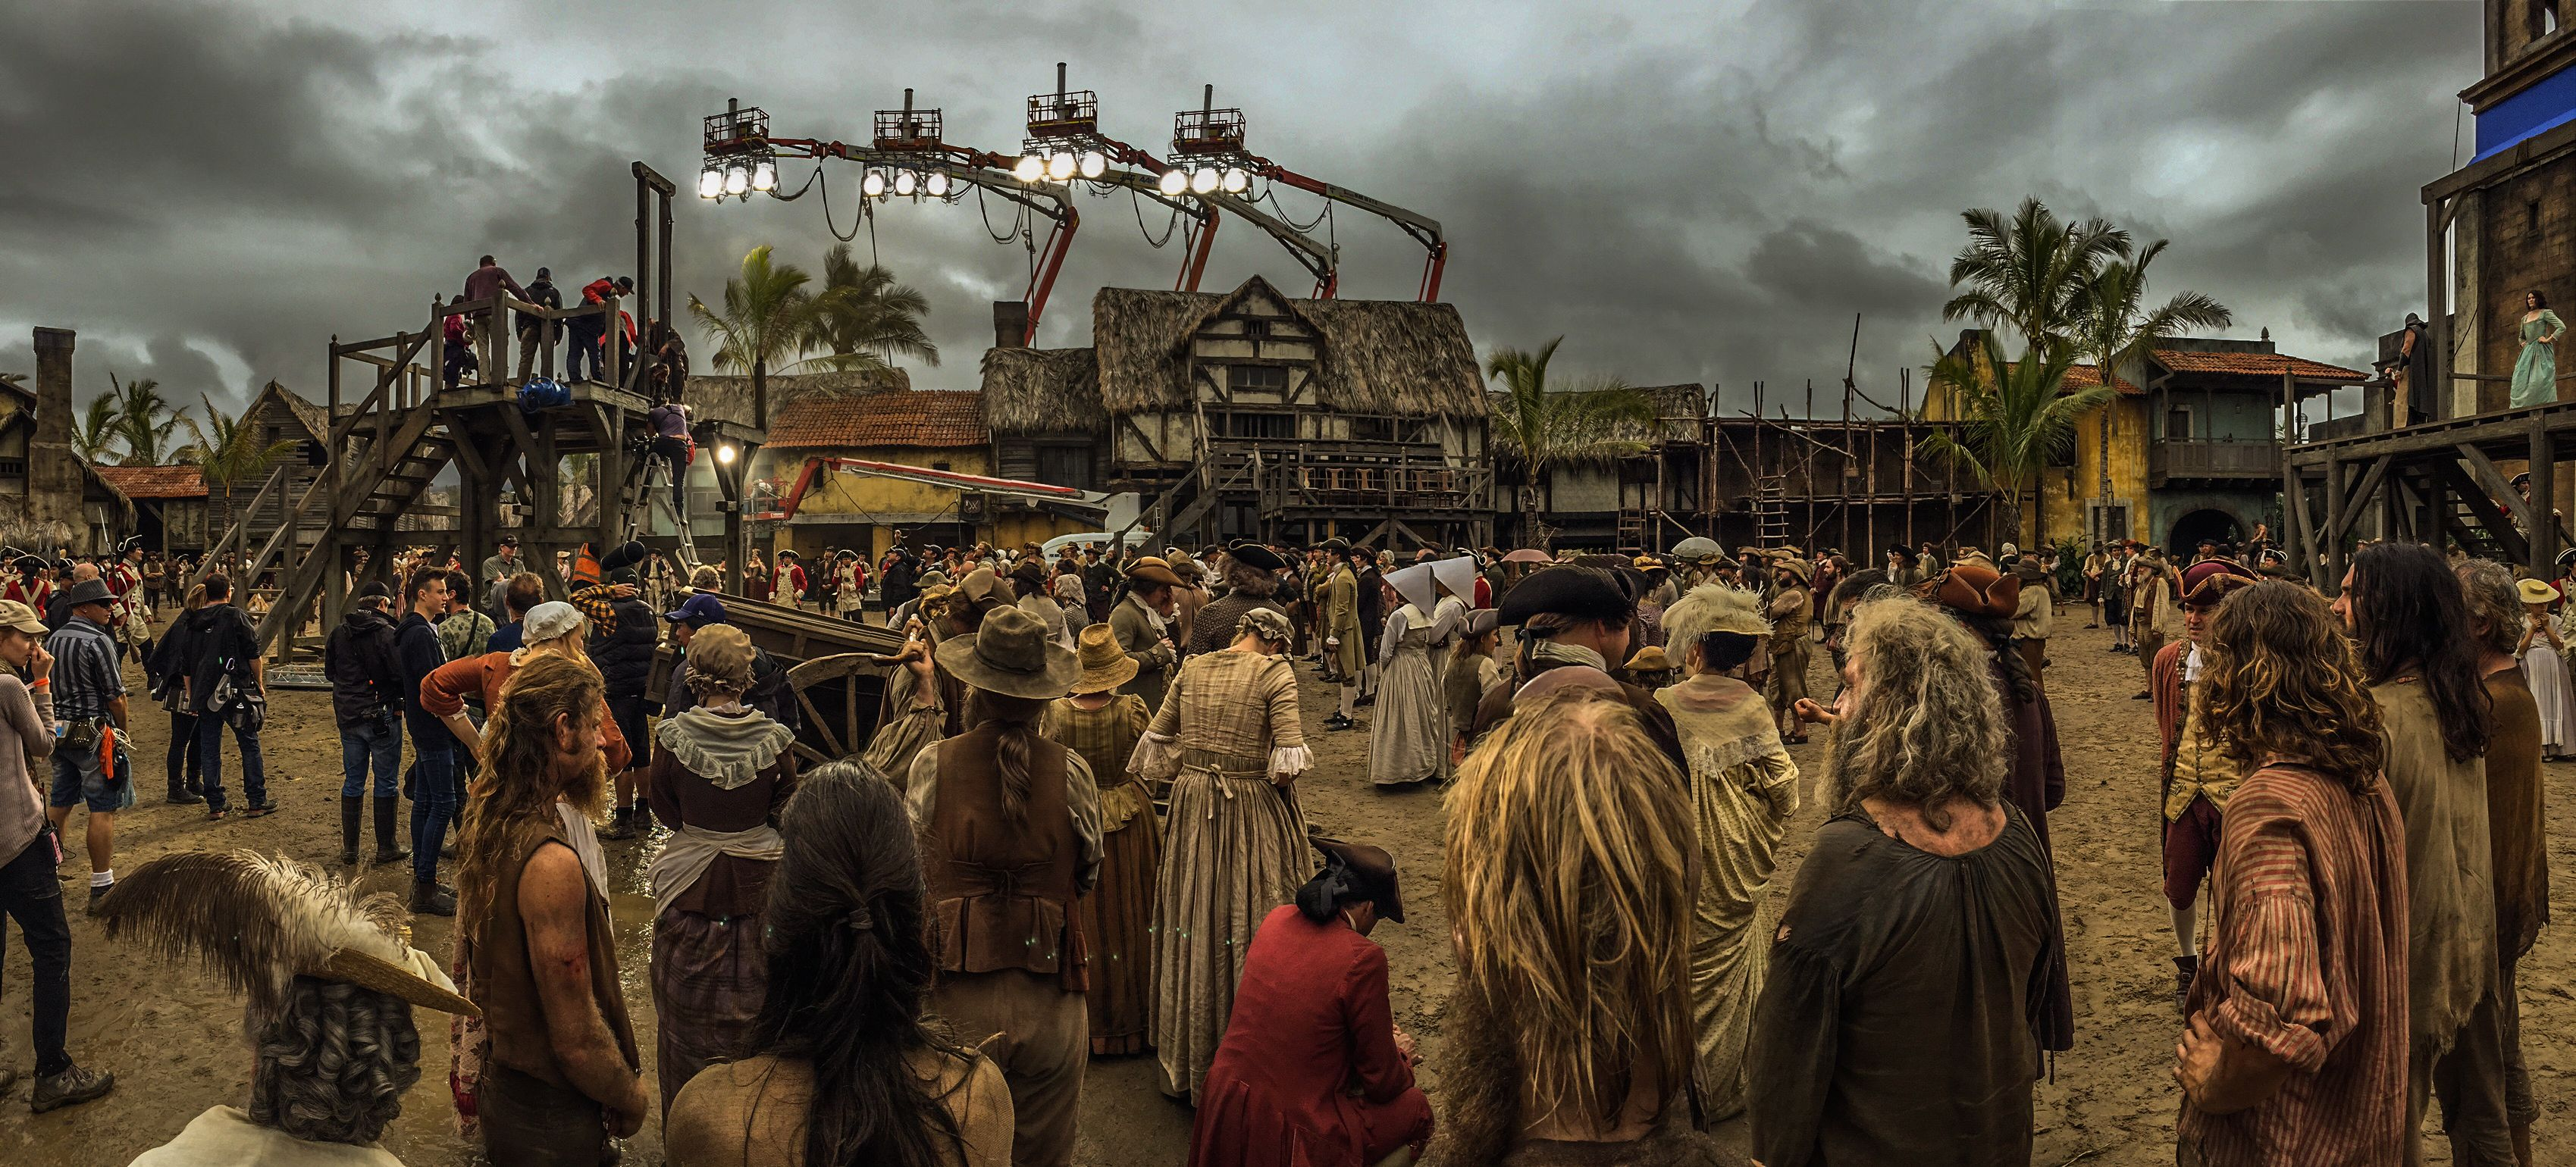 Paul Cameron On Shooting Pirates Of The Caribbean 5